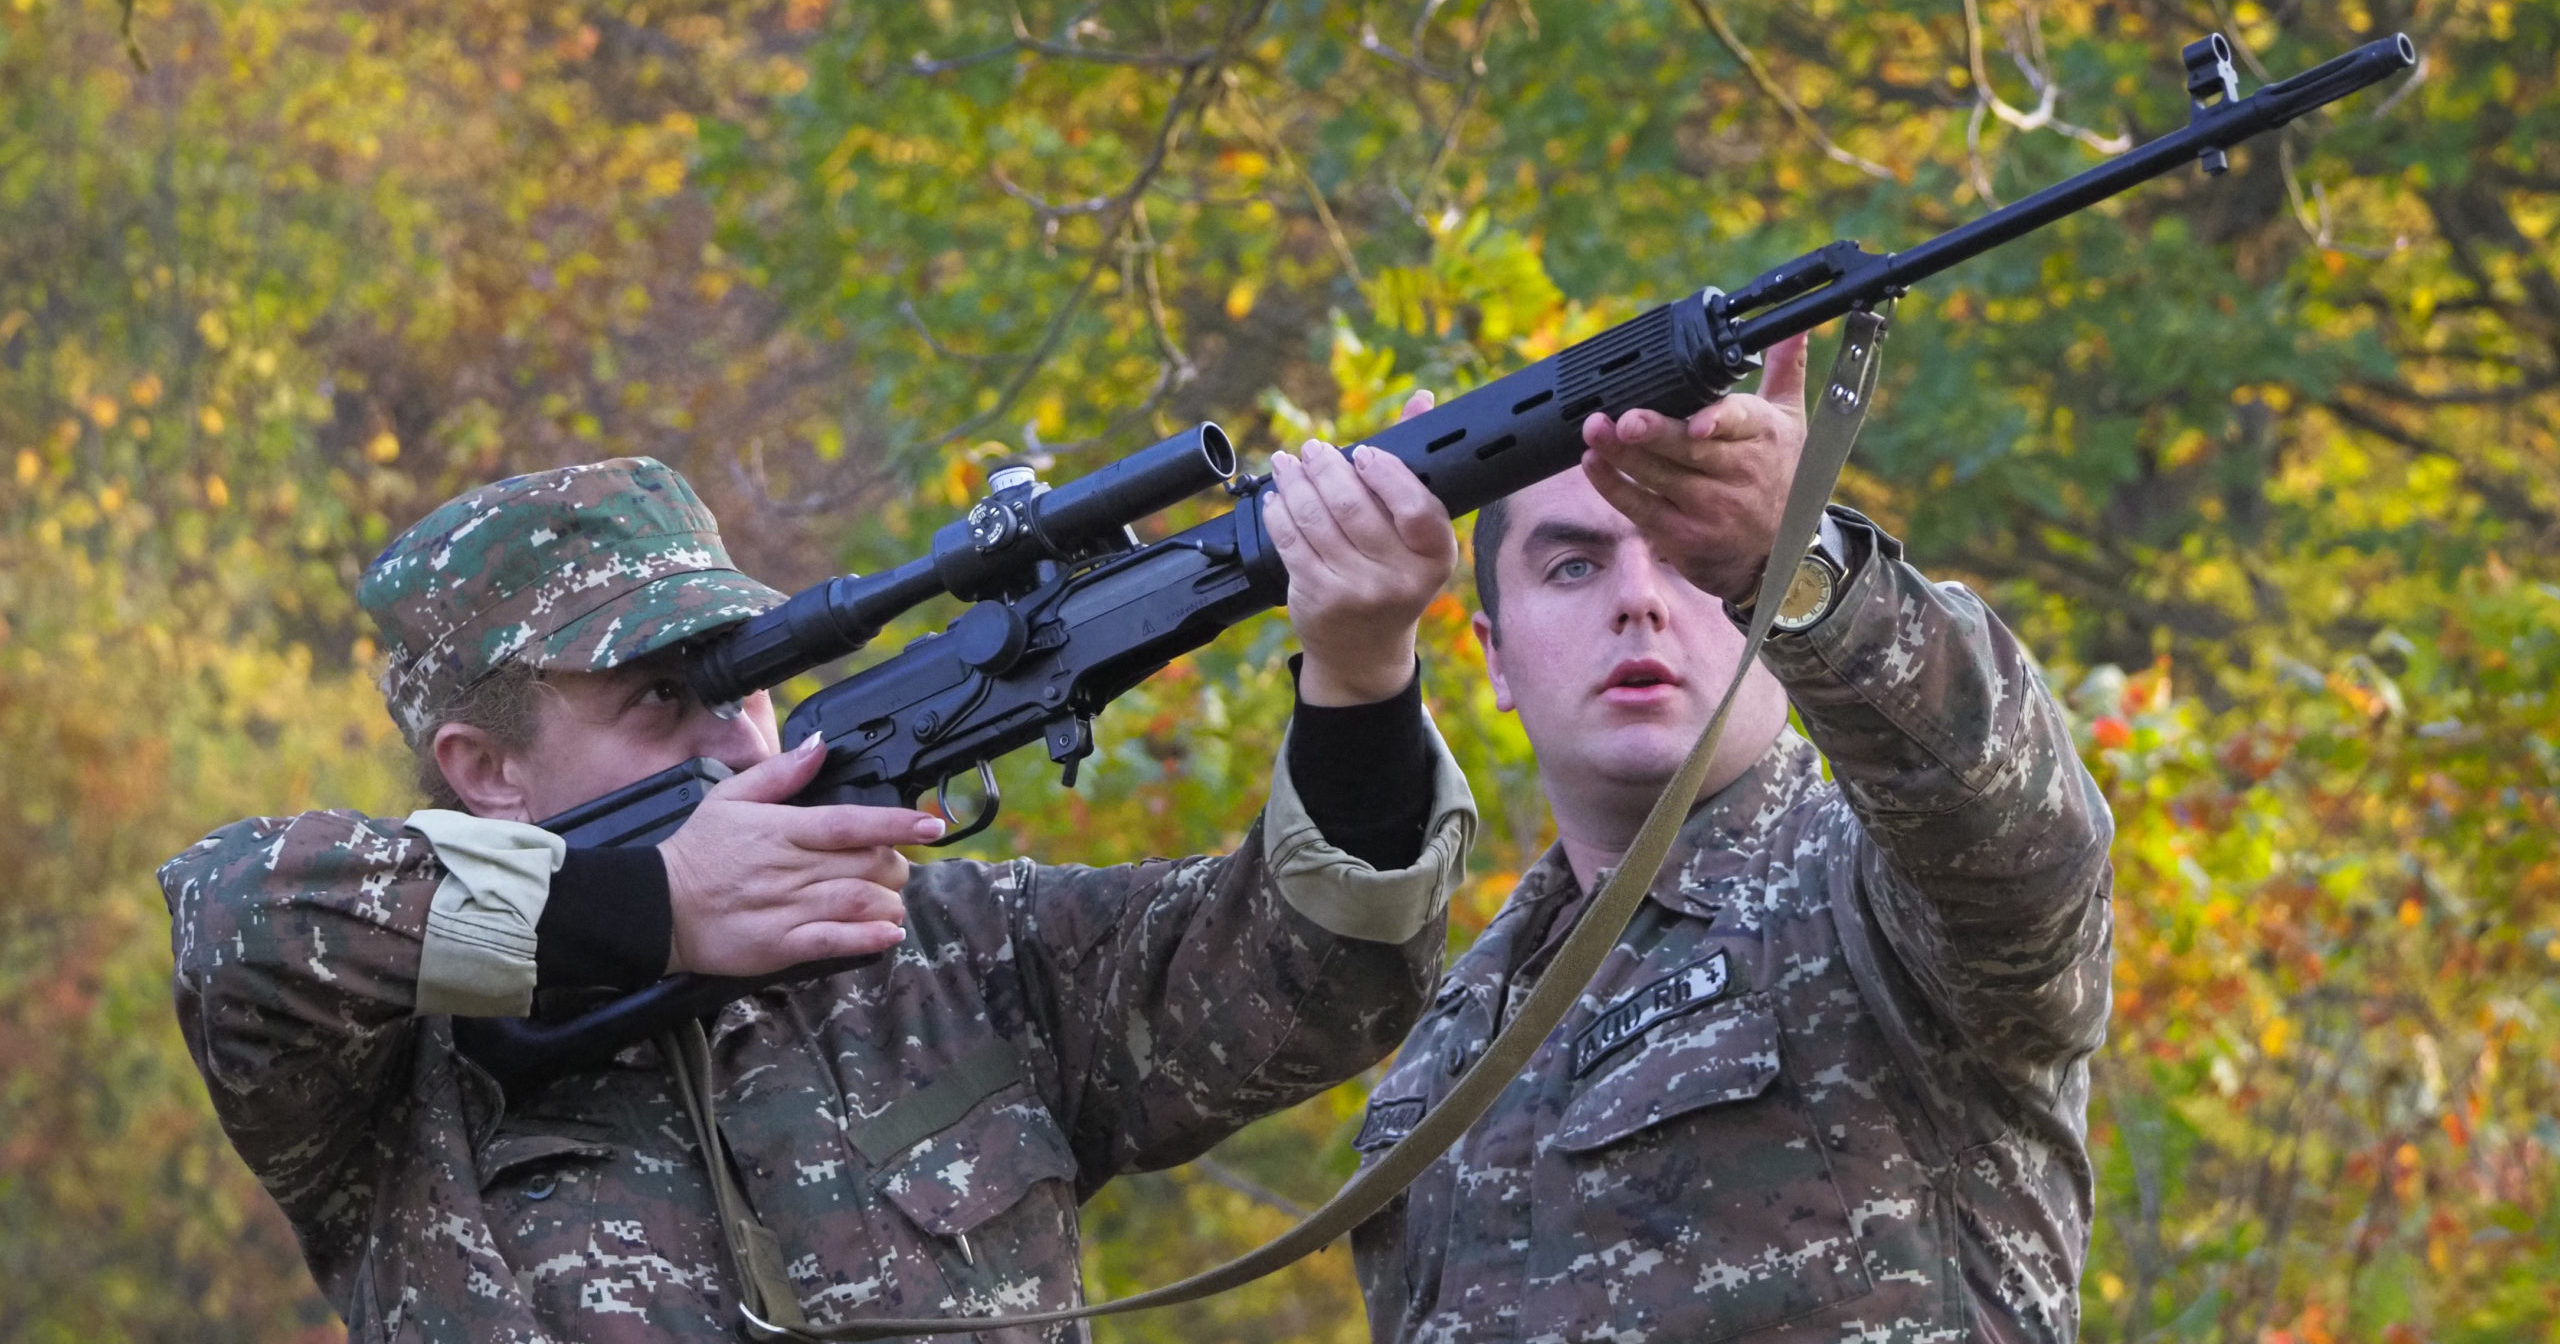 An instructor helps a volunteer soldier practice with a sniper rifle at a military base during a conflict in the separatist region of Nagorno-Karabakh on Oct. 27, 2020.